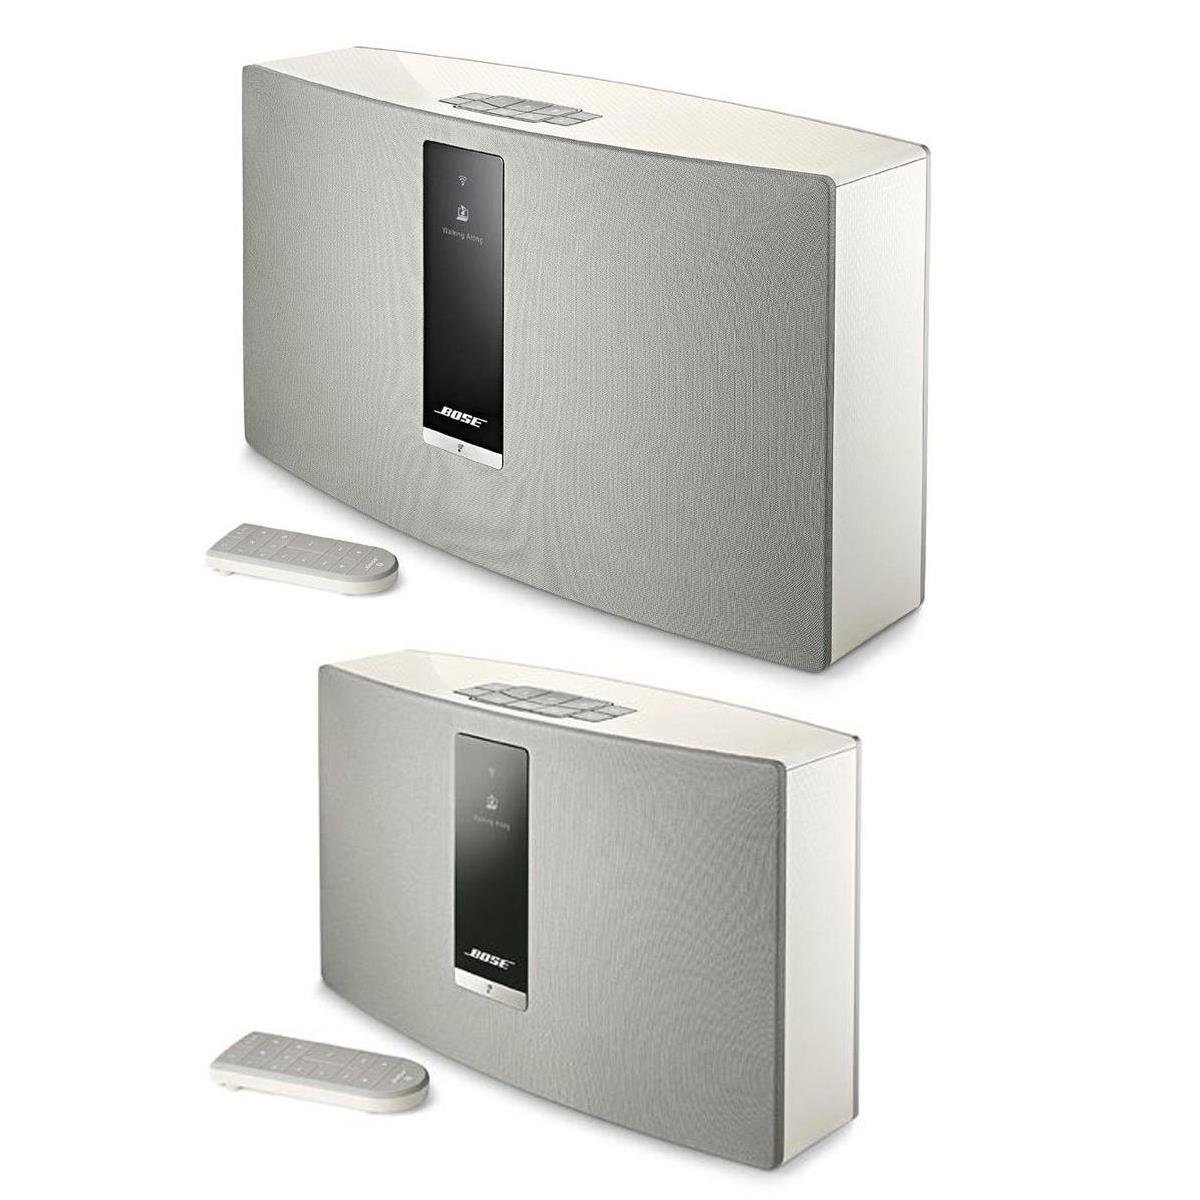 bose soundtouch 30 series iii wireless music system with remote control white with soundtouch. Black Bedroom Furniture Sets. Home Design Ideas